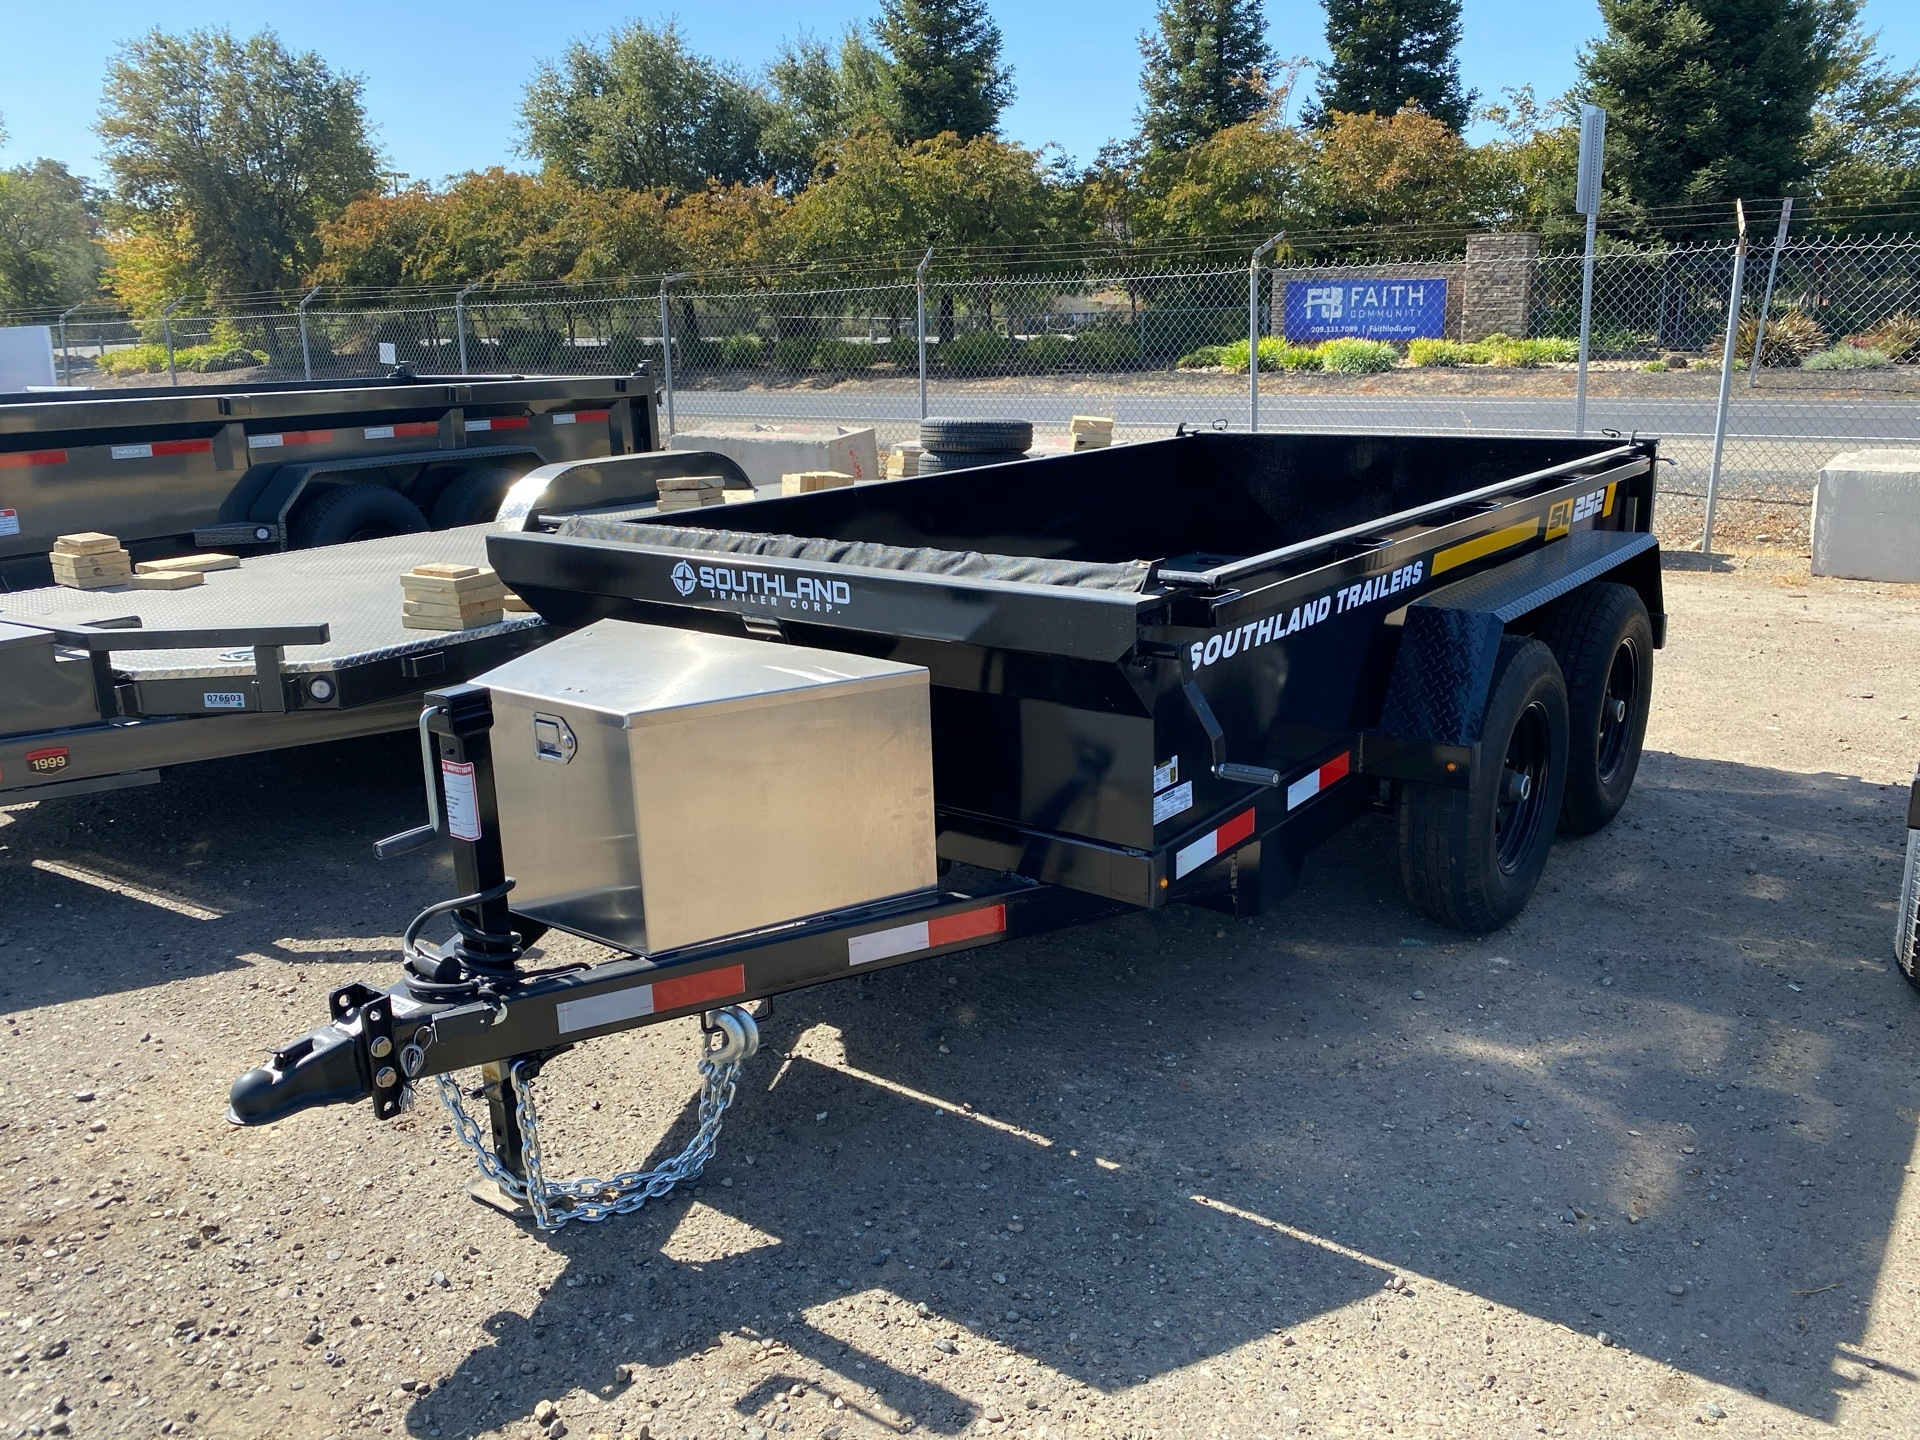 2021 SOUTHLAND TRAILER CORP SL510-10K DUMP in Acampo, California - Photo 1